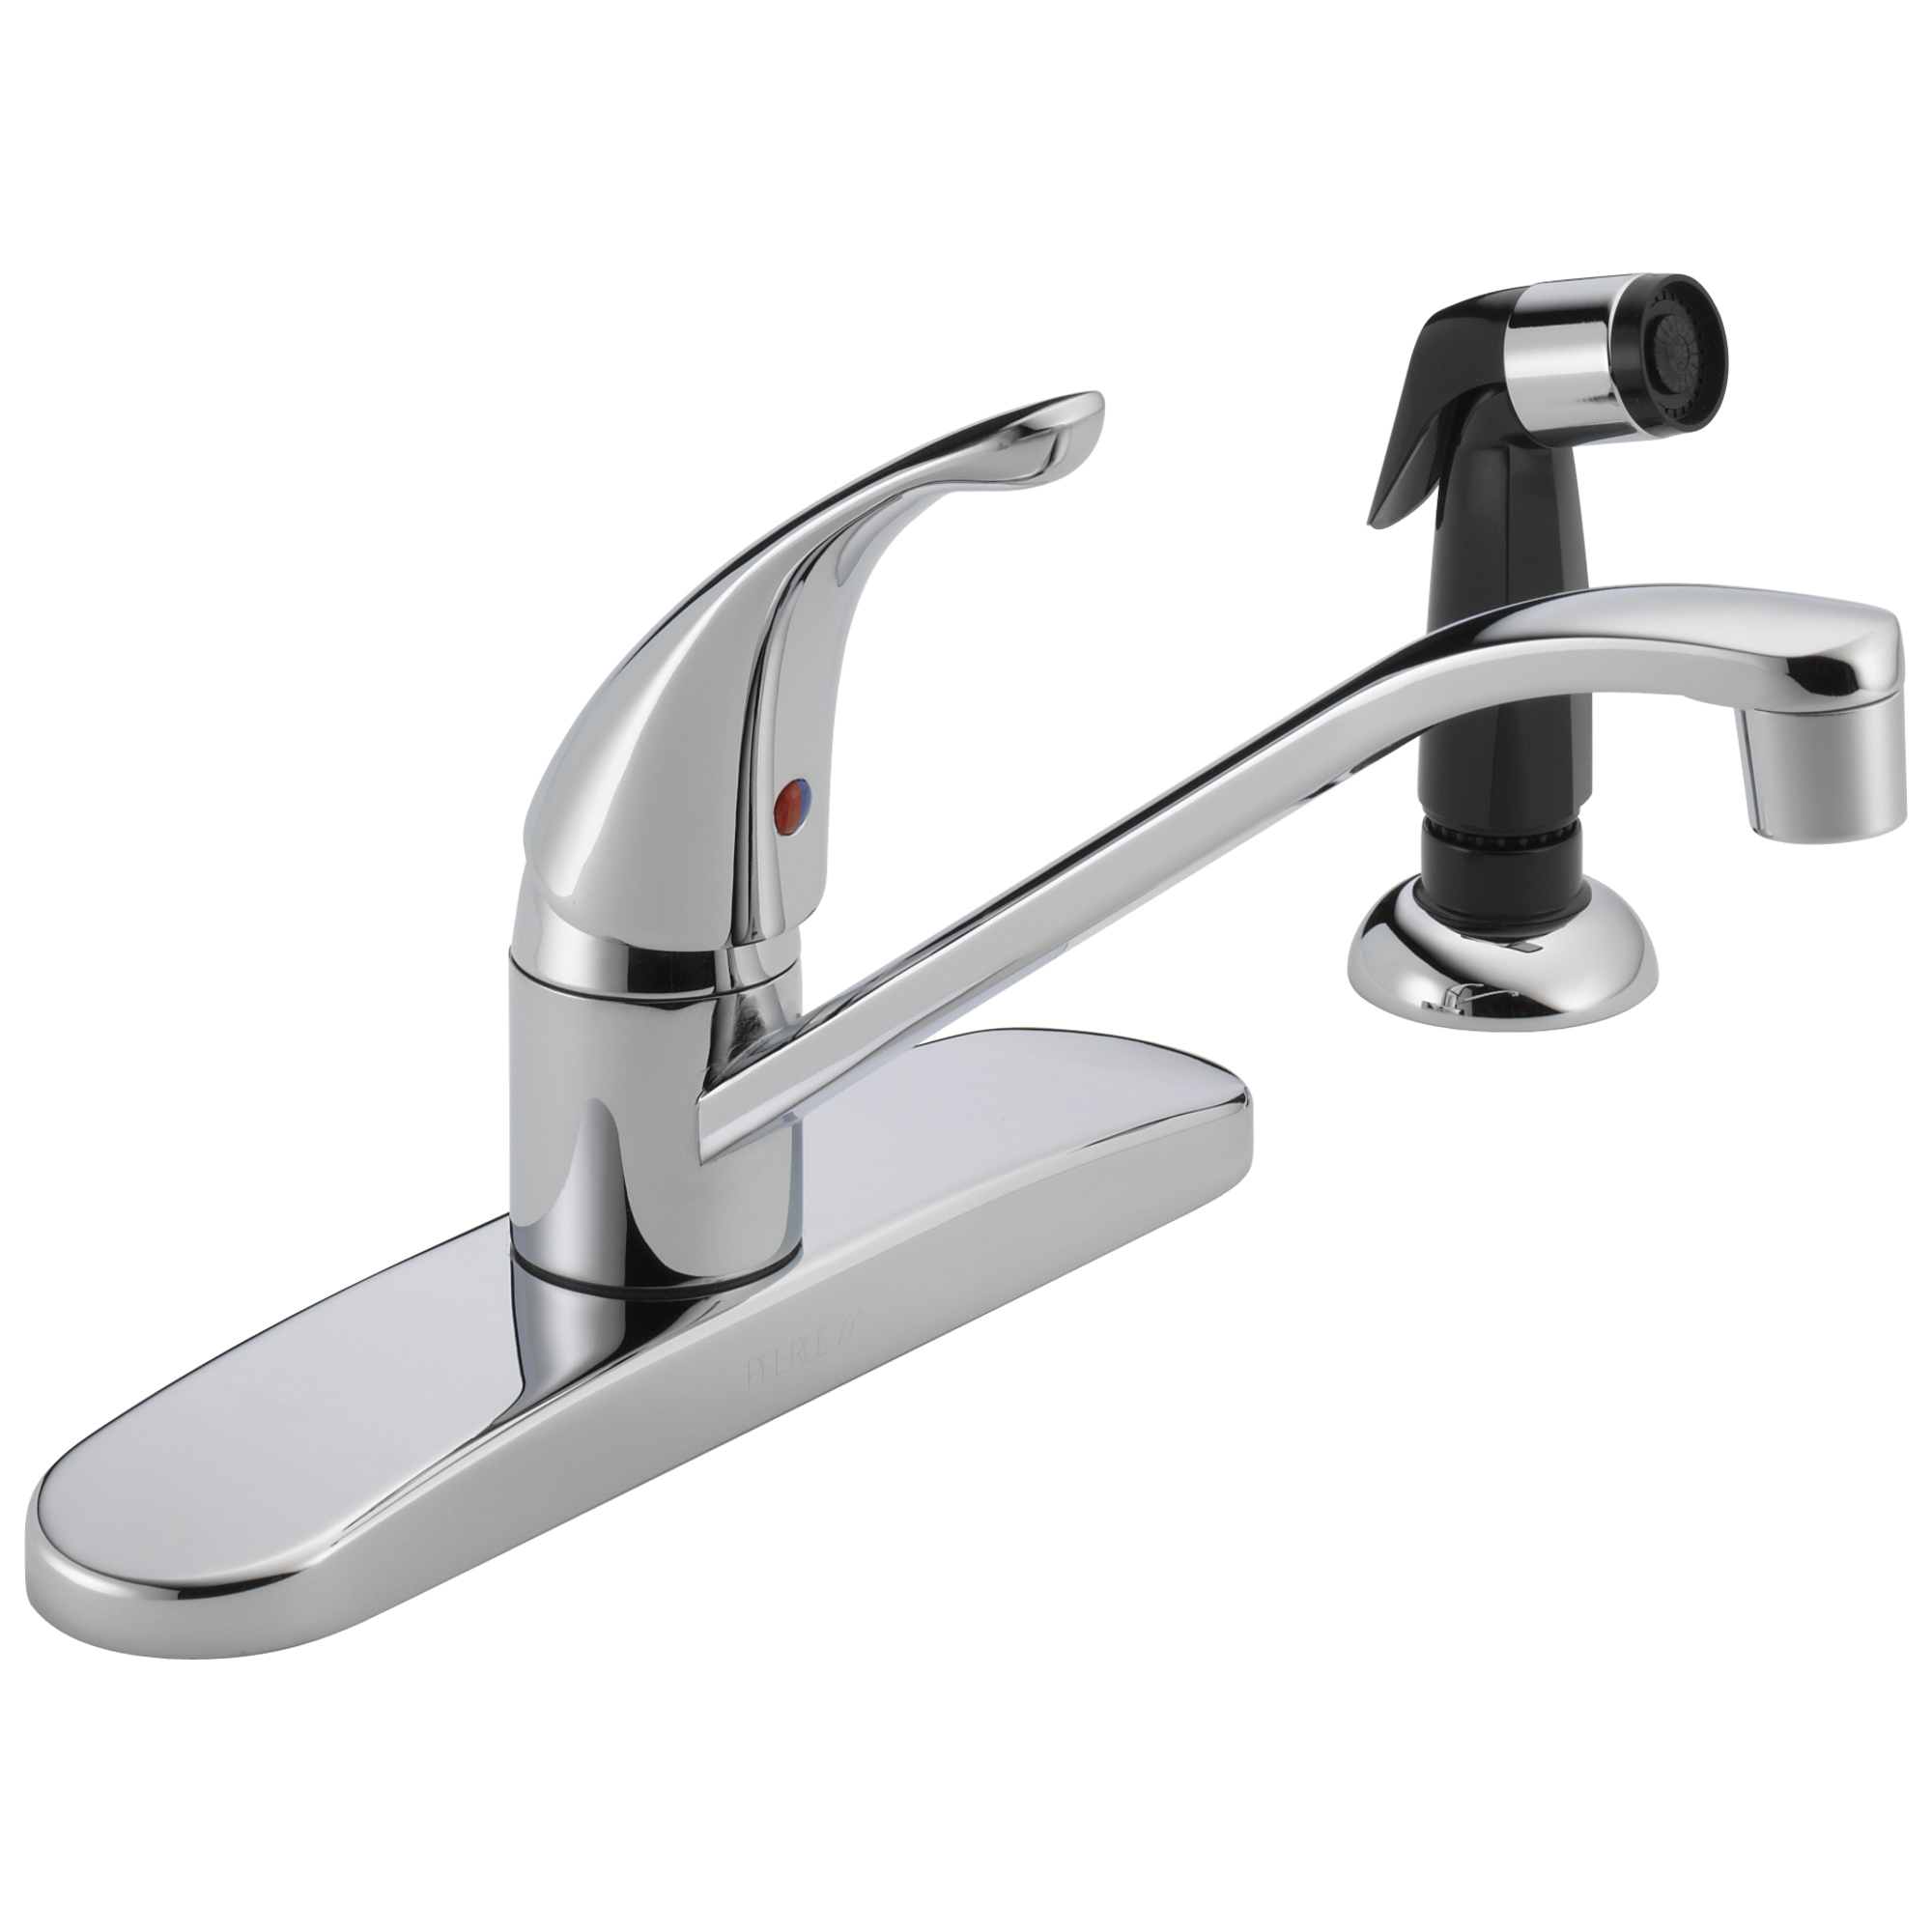 Peerless® P115LF Kitchen Faucet, 1.8 gpm Flow Rate, 8 in Center, Swivel Spout, Polished Chrome, 1 Handles, Import